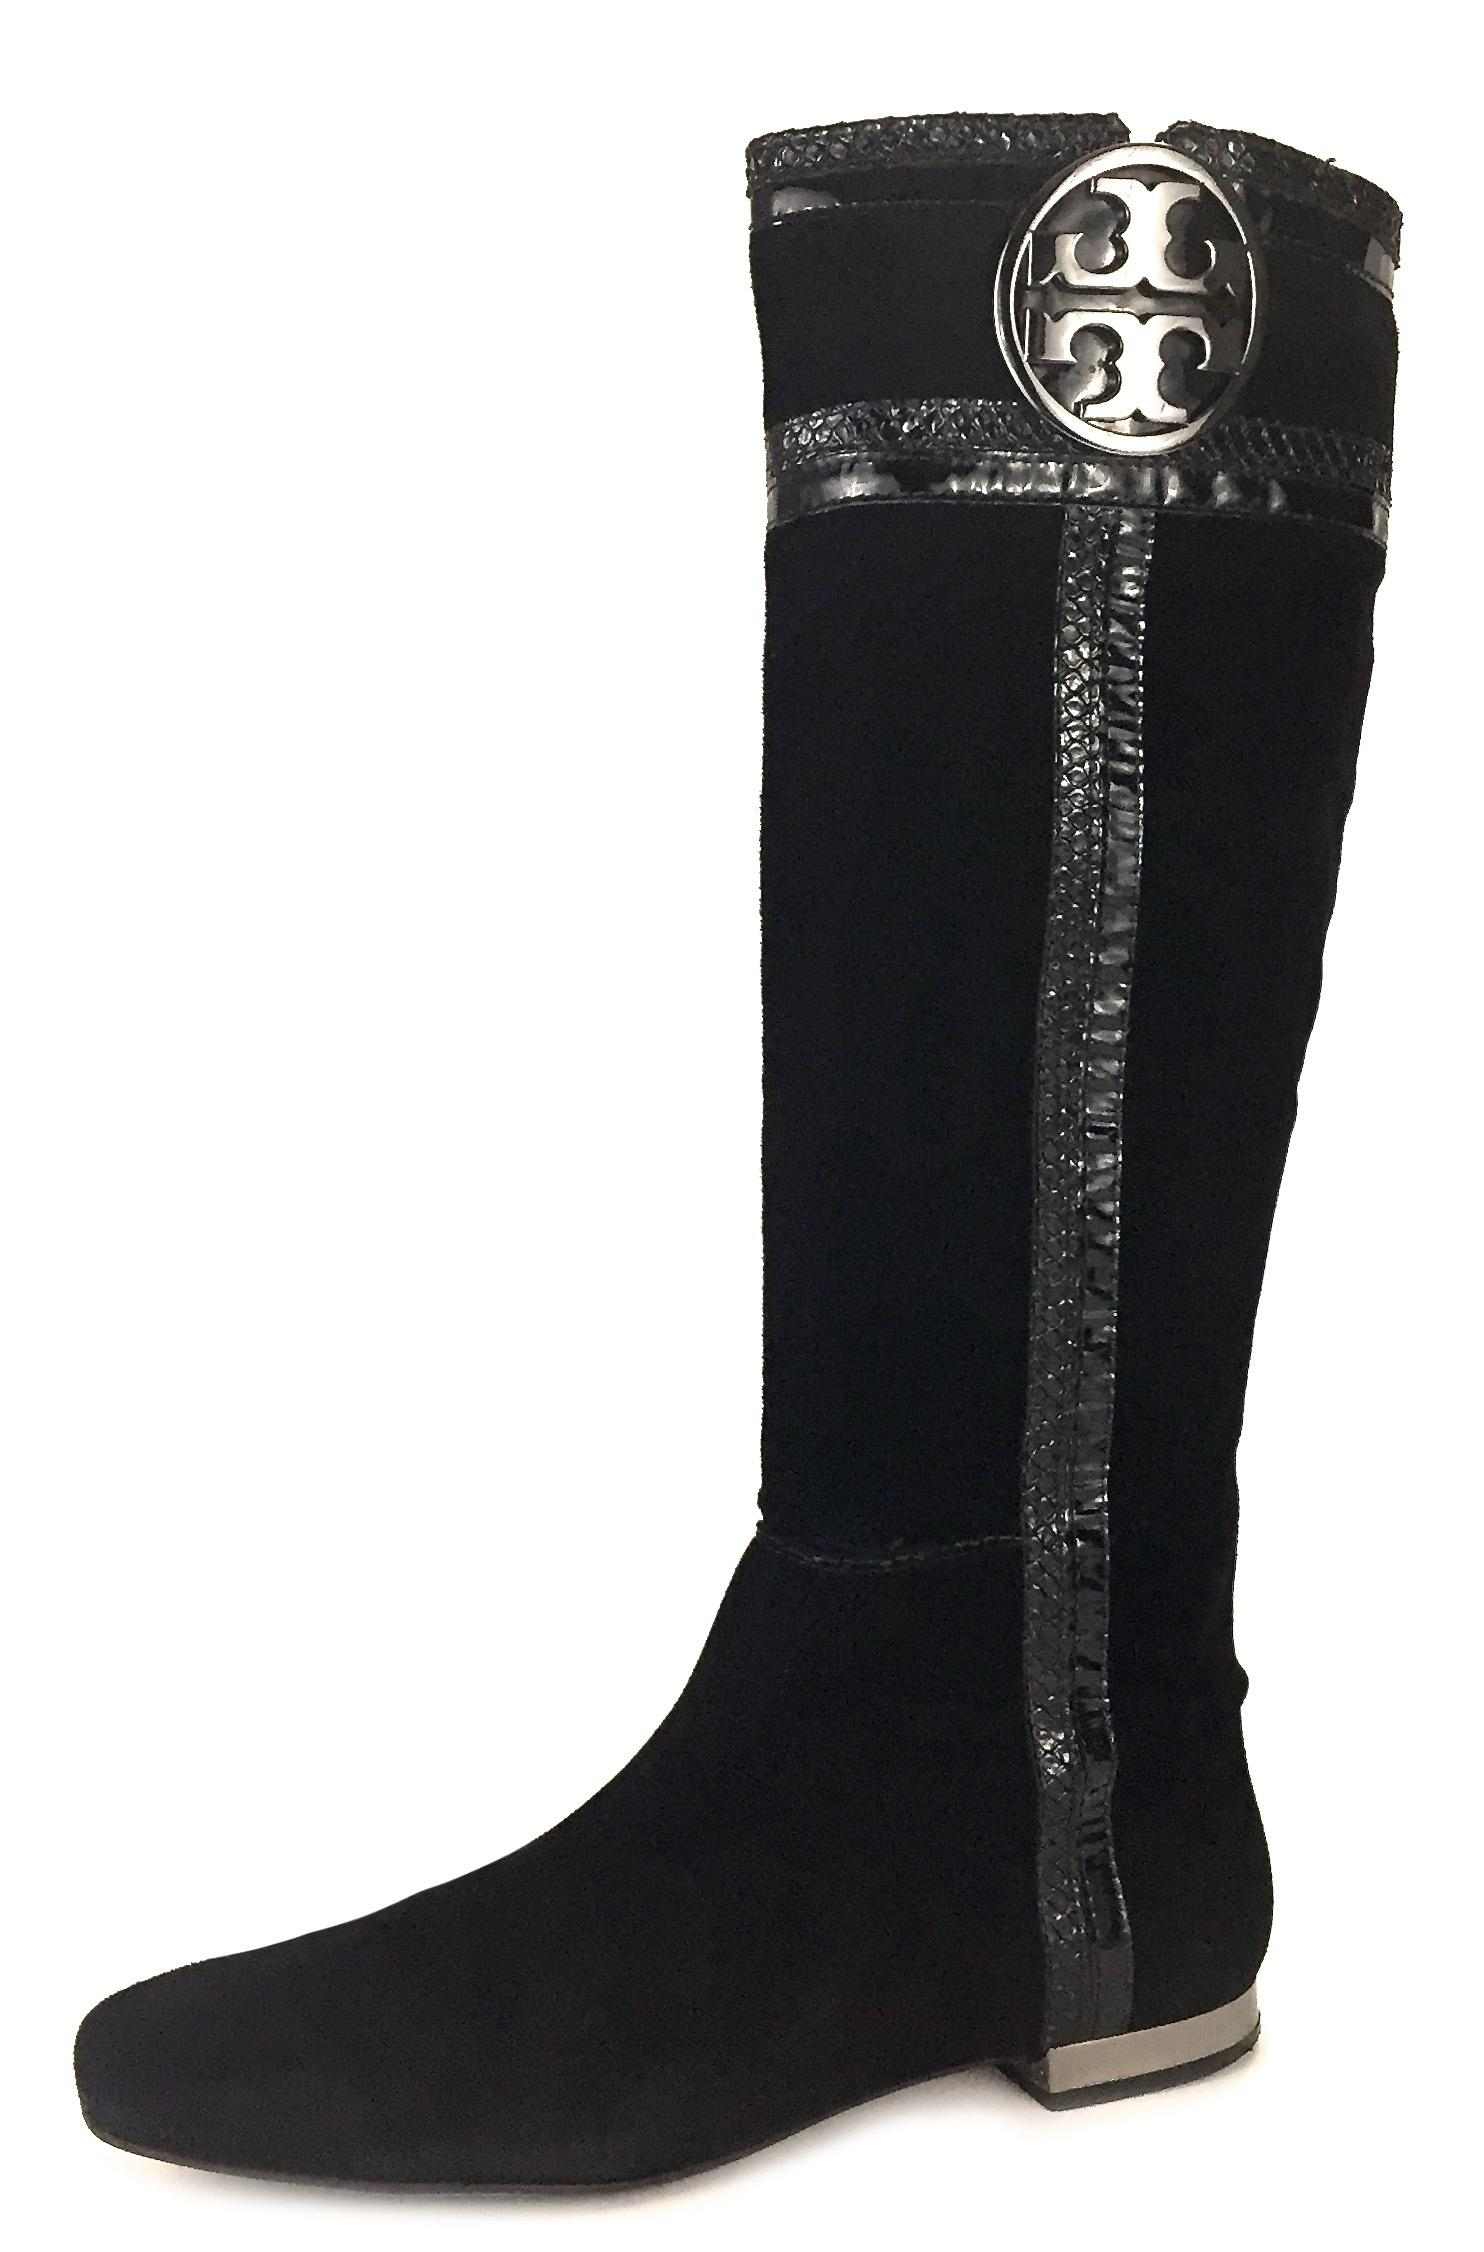 4a8f8b21c2b2b6 ... spain tory burch classic casual suede logo comfortable black boots  d1ee7 2688c